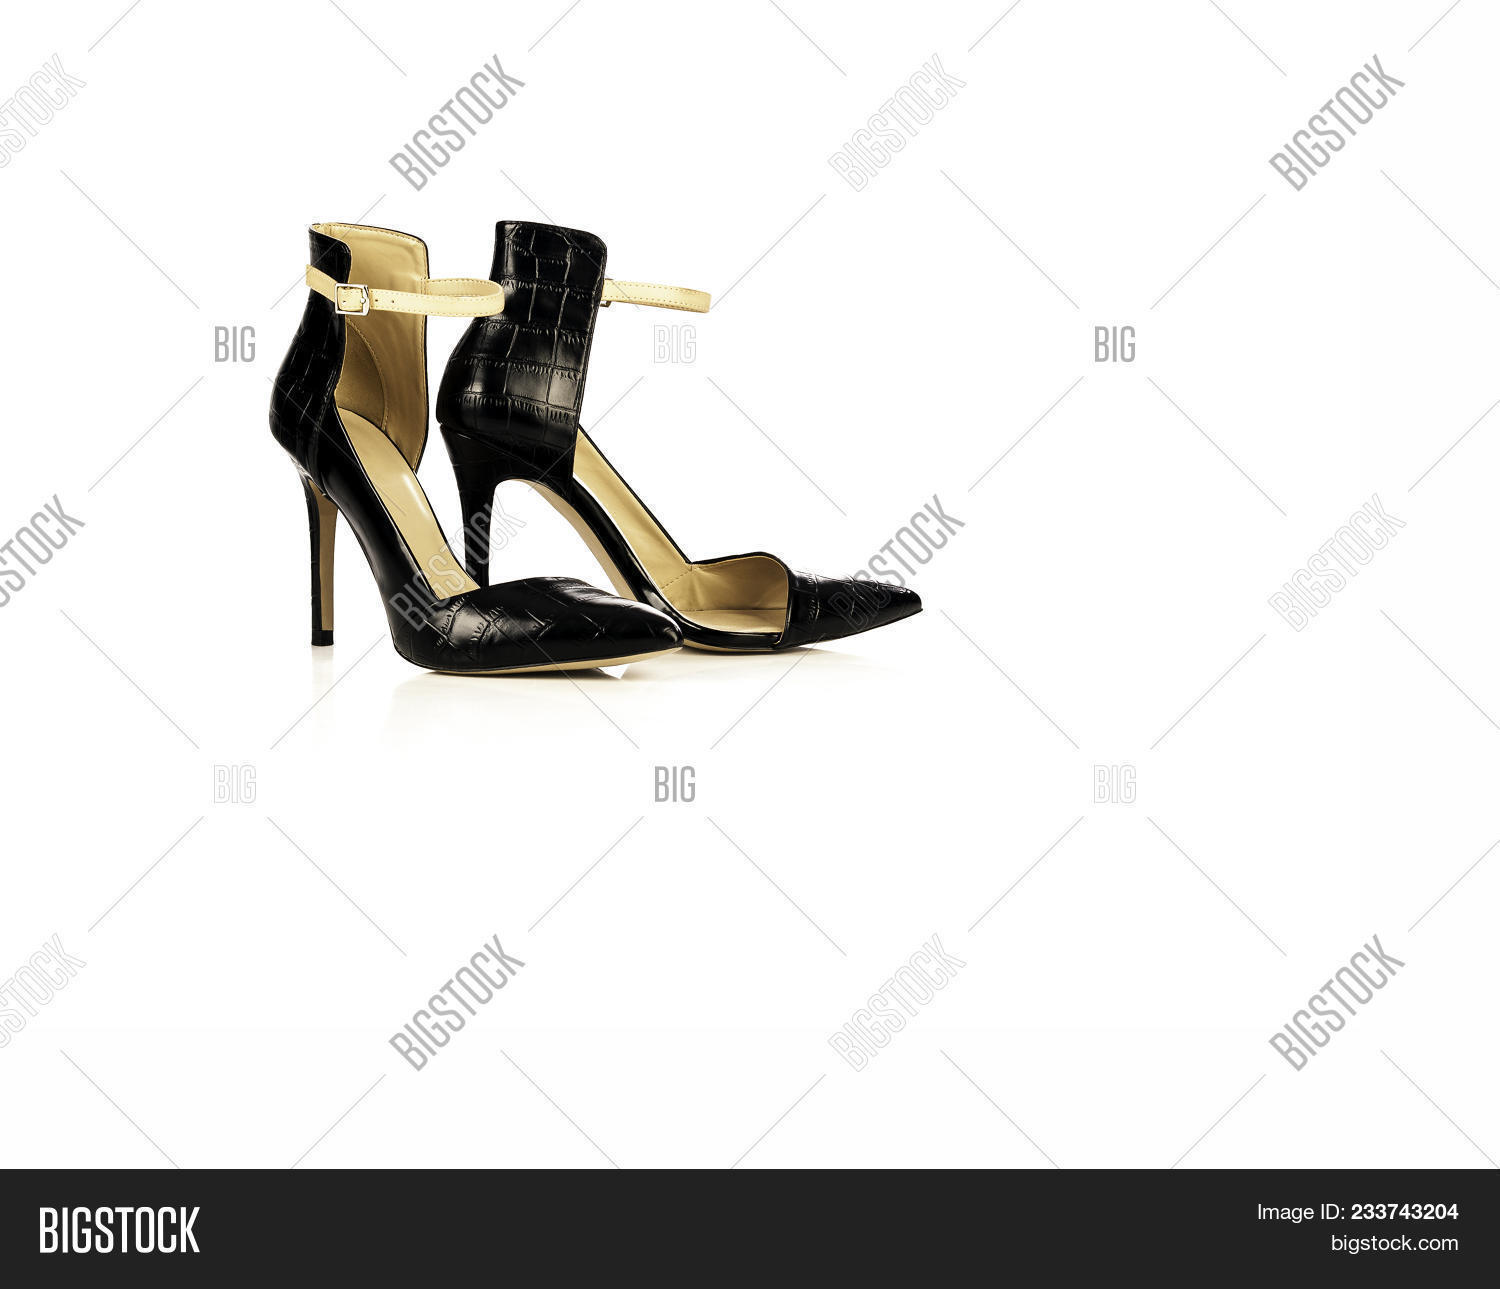 b2e0531ae631 Black Leather Elegant And Stylish Women Shoes With High Heel Isolated On White  Background